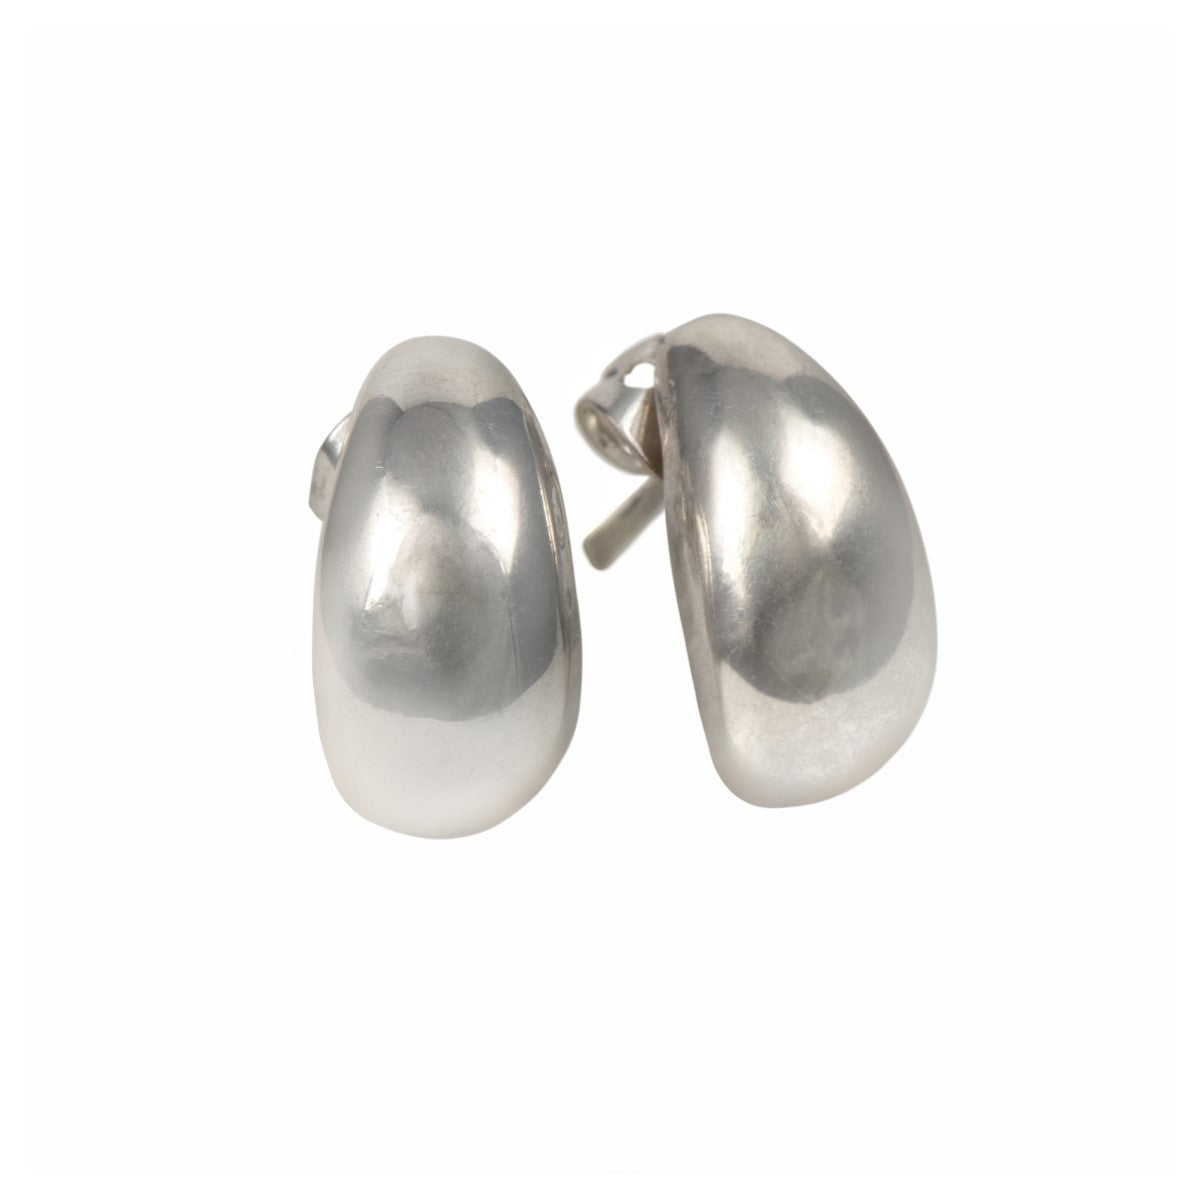 Sterling Silver Studs with a Curved Teardrop Shape